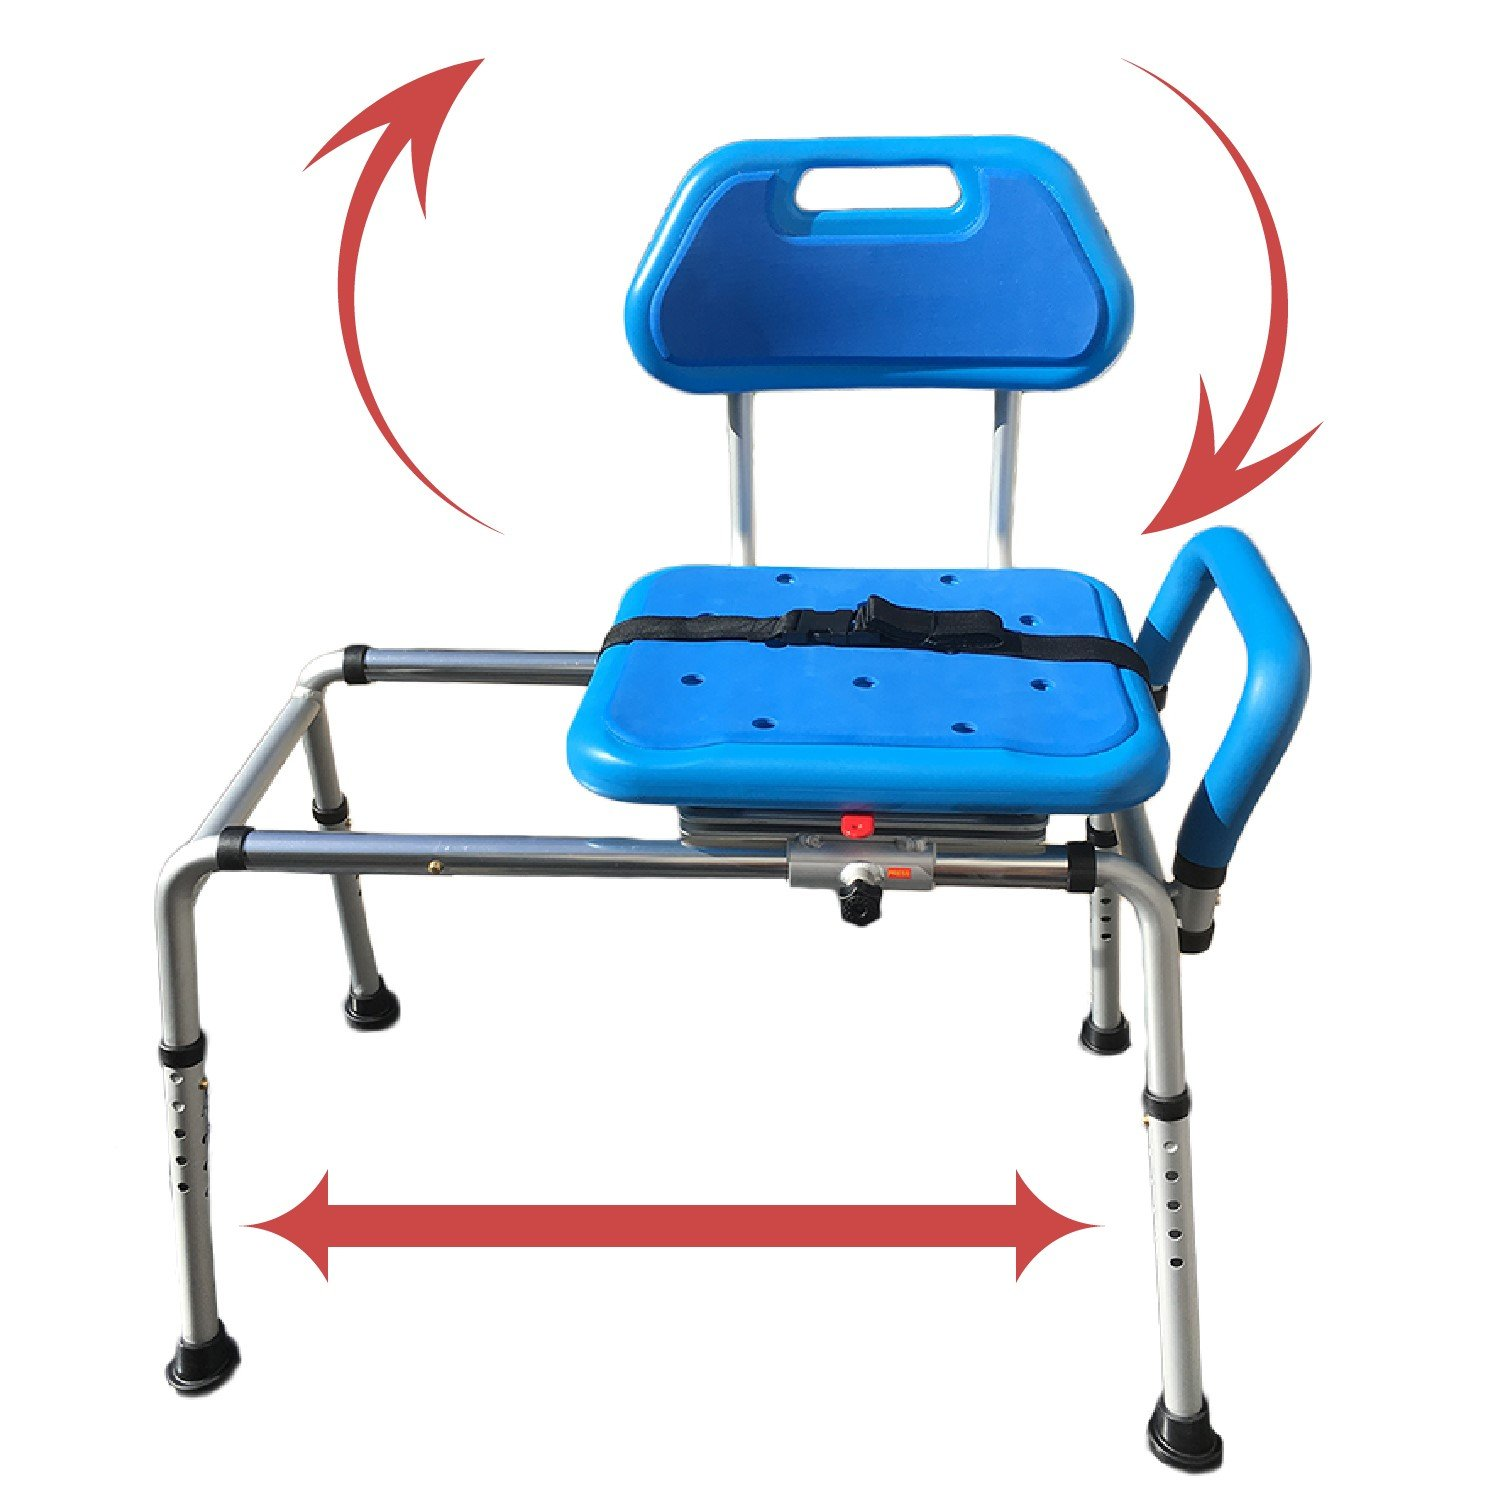 Gateway Premium Sliding Bath Transfer Bench with Swivel Seat-PADDED by Platinum Health (Image #1)